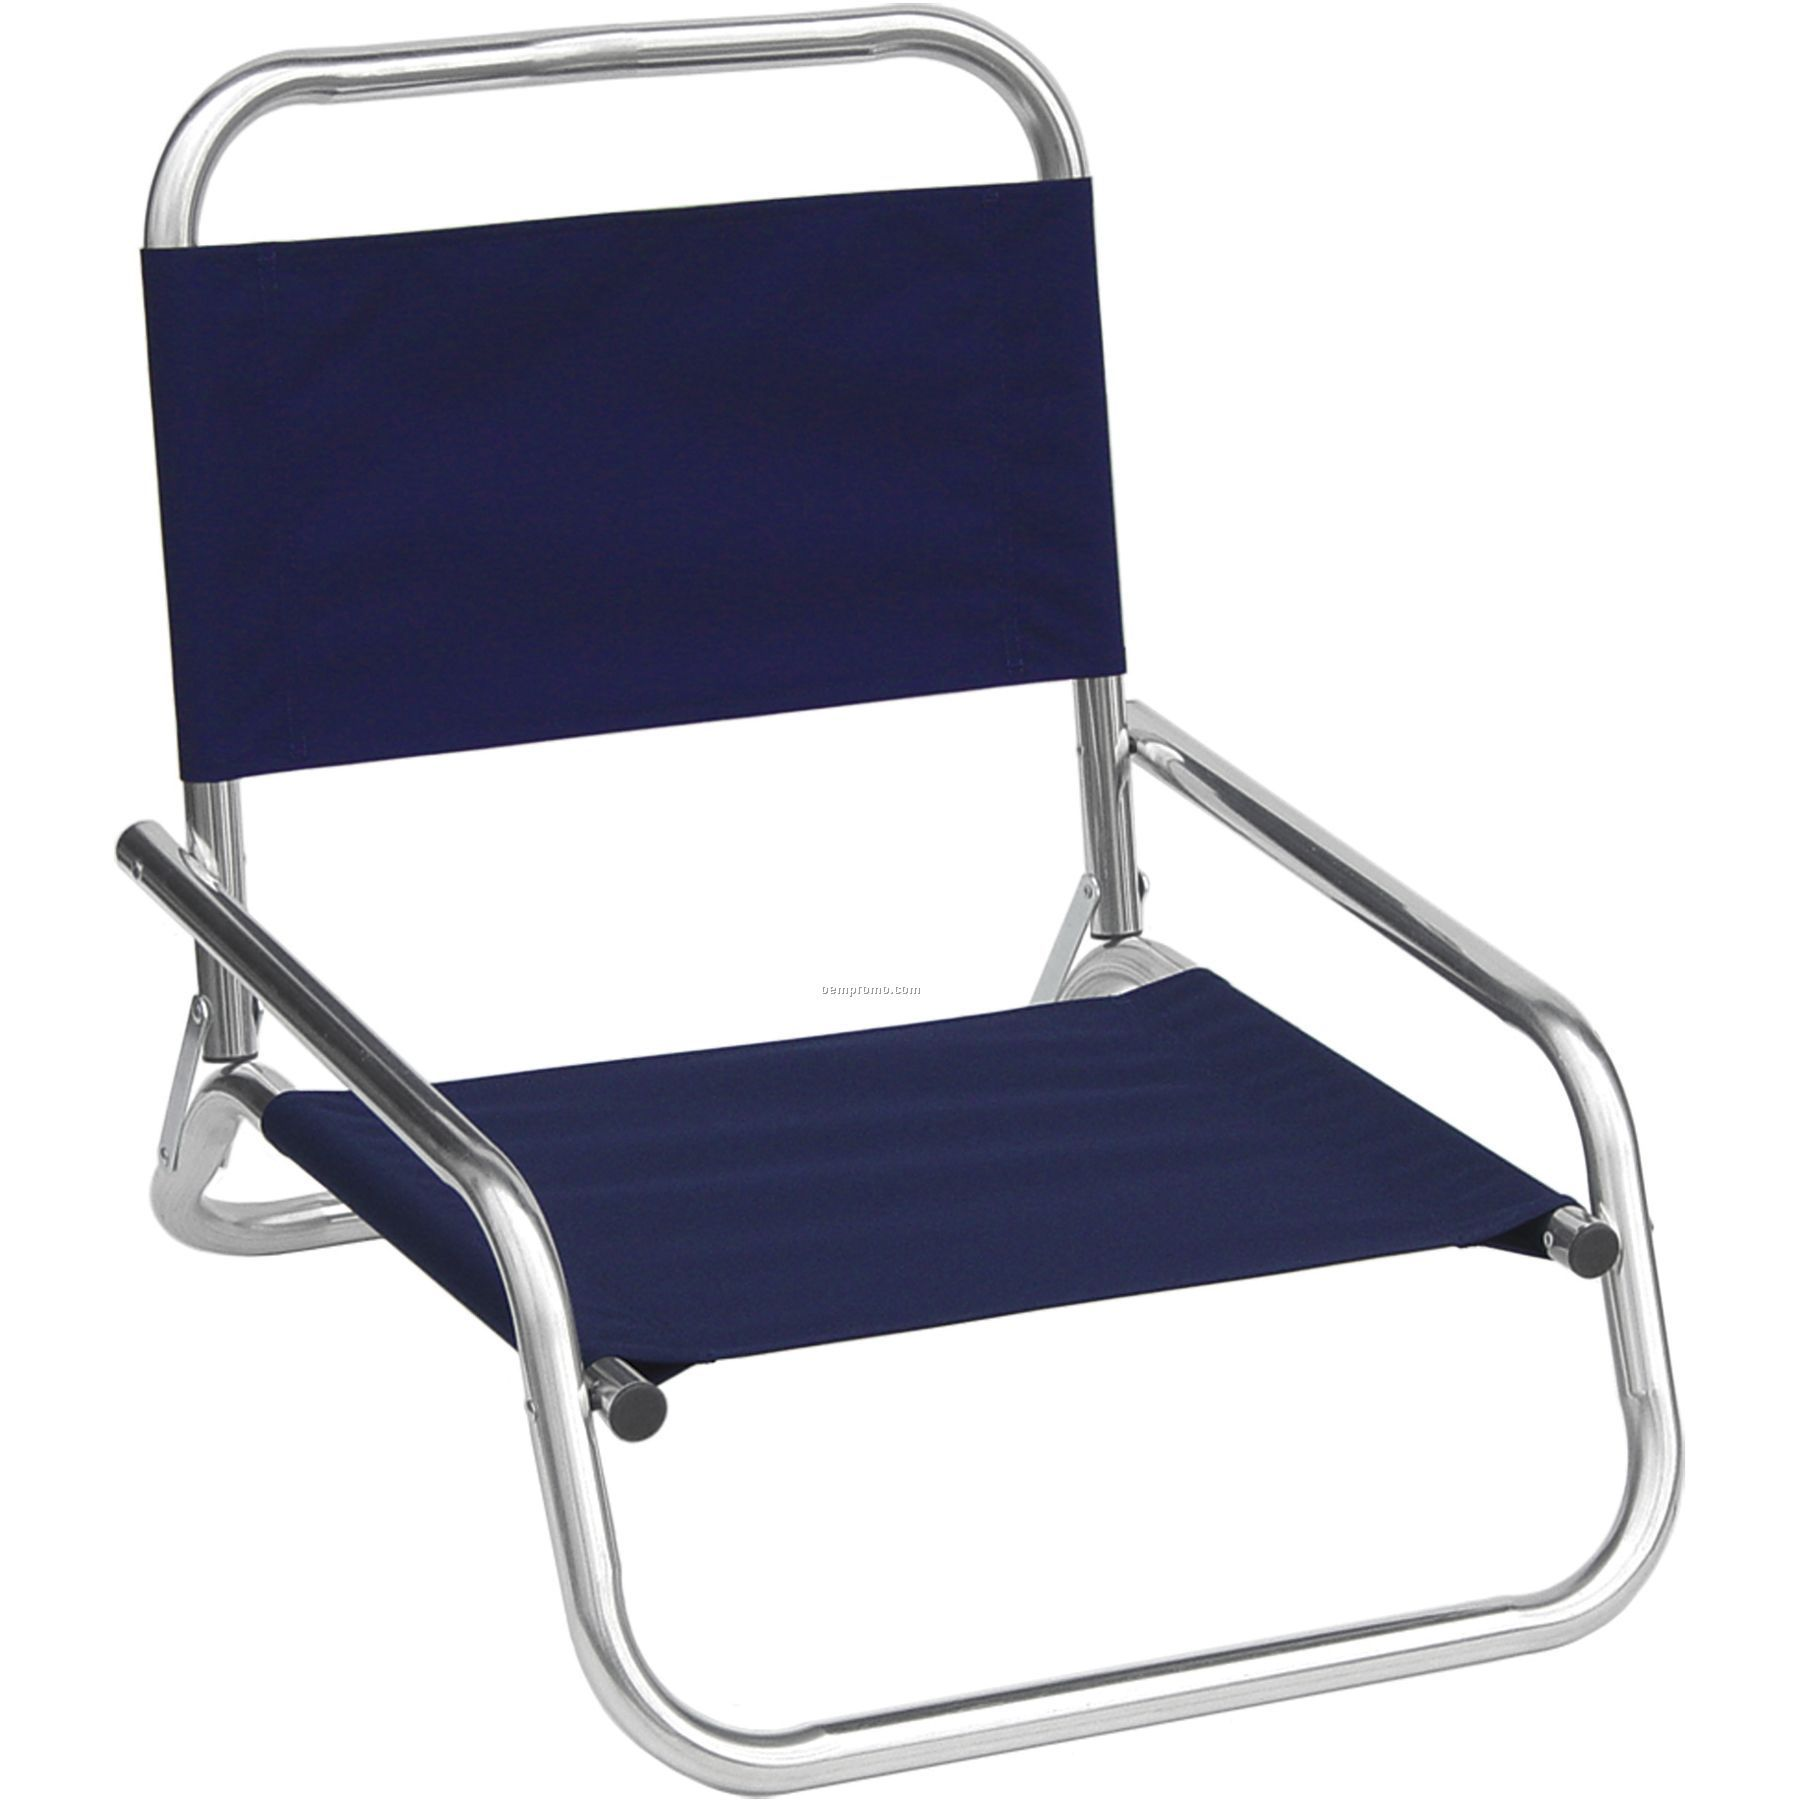 Cheap Folding Beach Chairs Ideal Low Folding Beach Chair Low Price Folding Beach